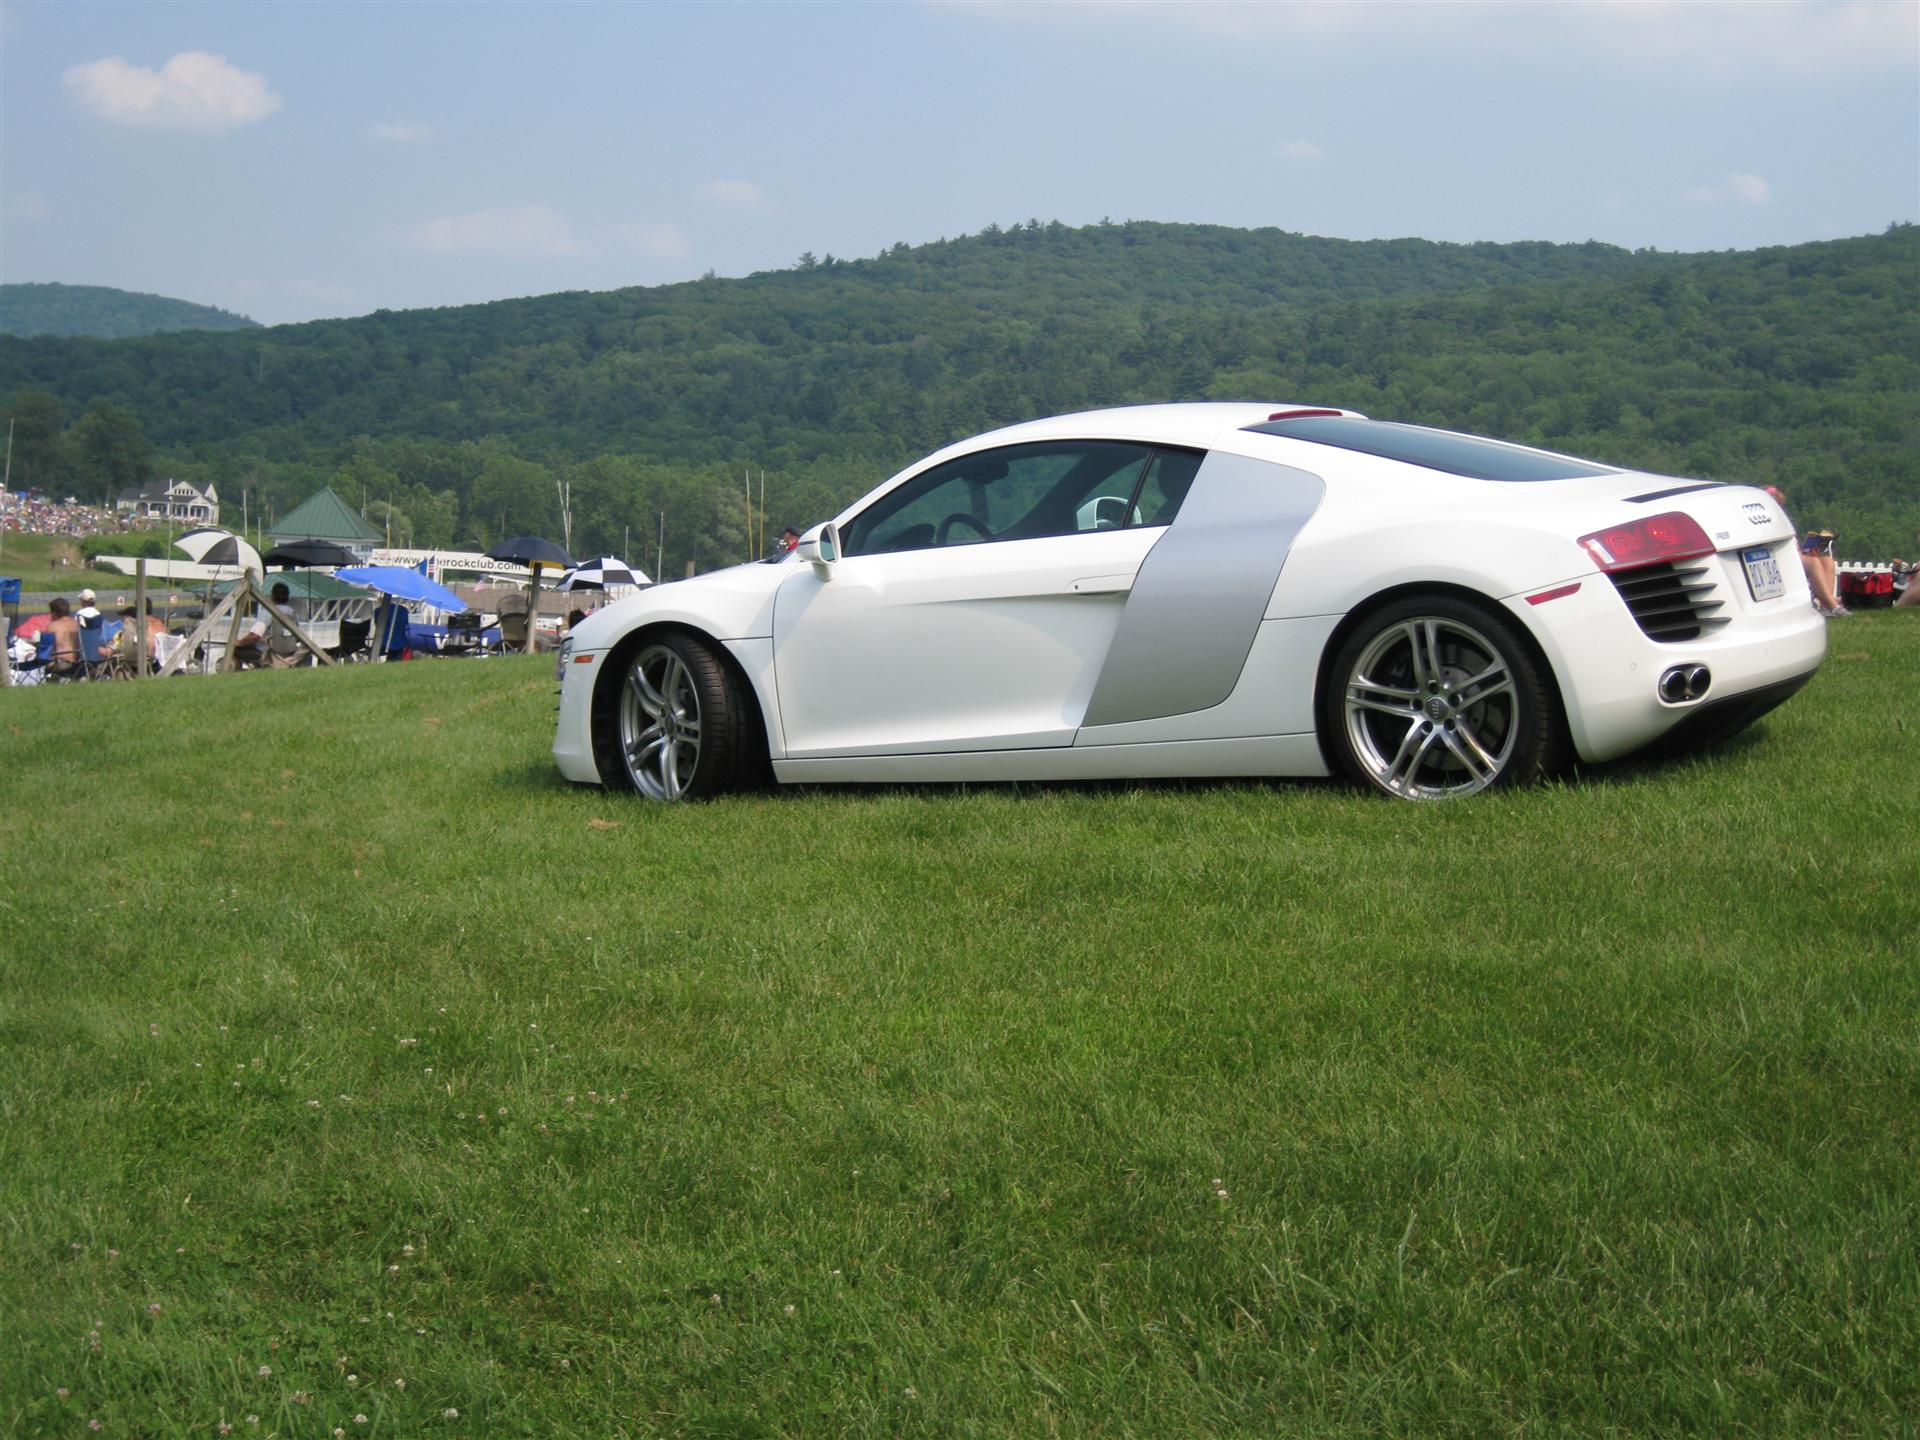 click to free download the wallpaper--Free Super Cars Image, Audi R8 on Green Grass, Smooth Lines, Strike Quite an Impression 1920X1440 free wallpaper download